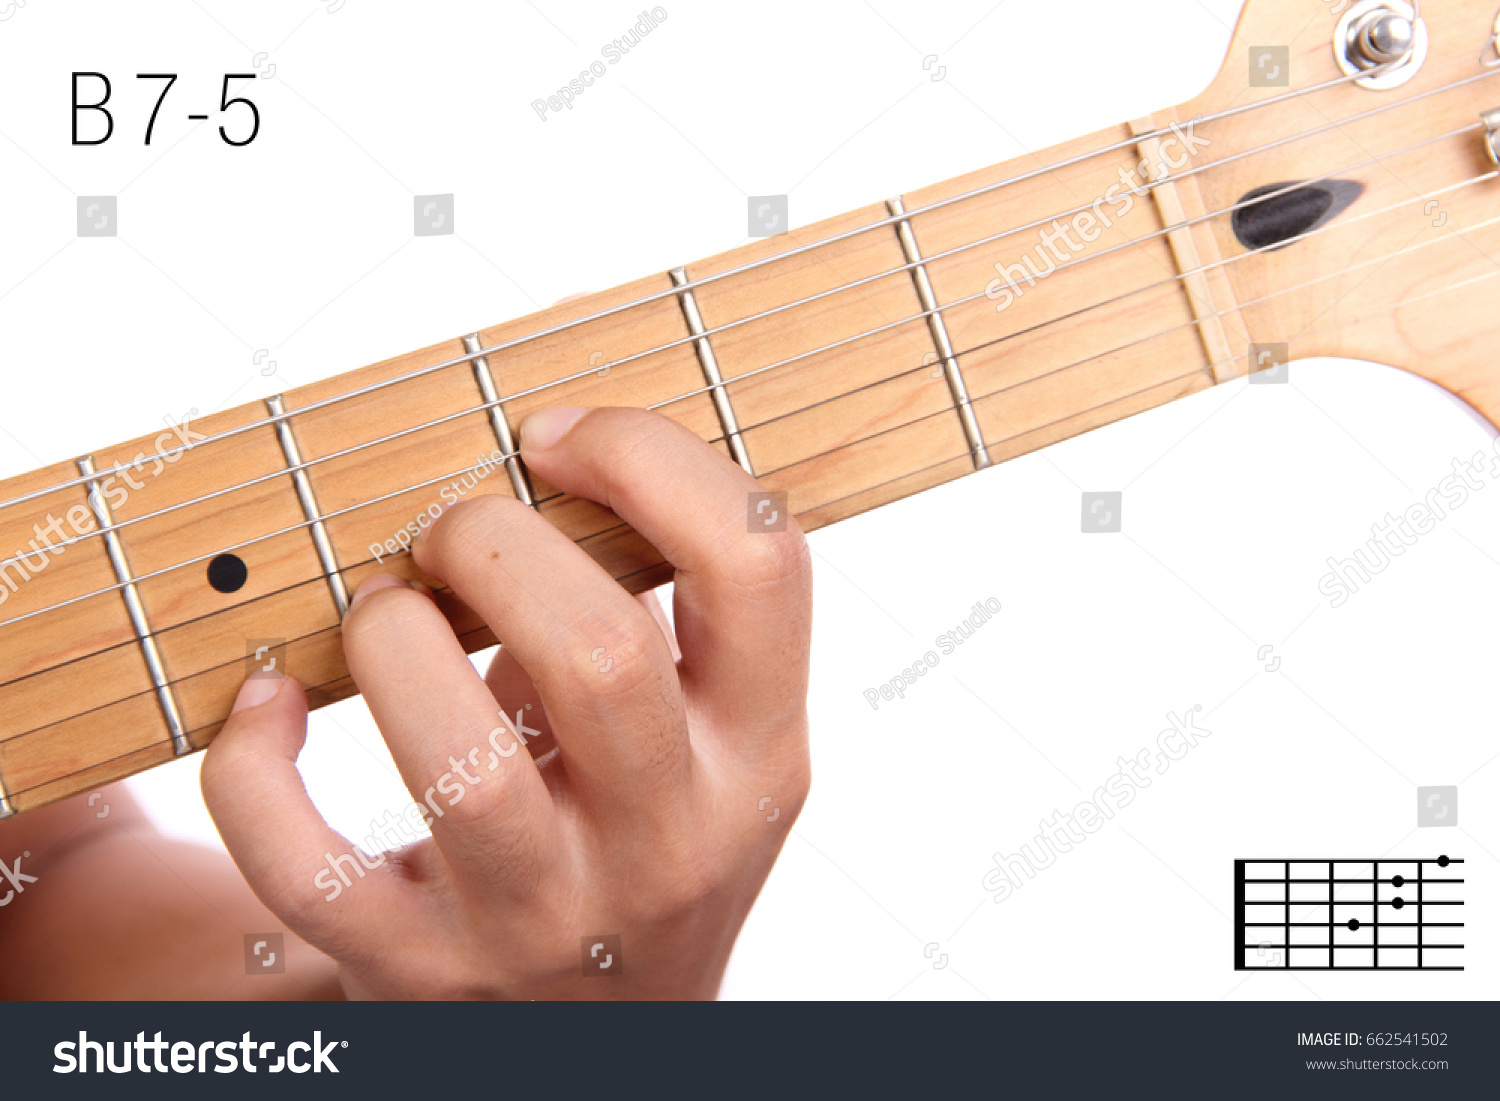 B 75 Advanced Guitar Keys Series Closeup Stock Photo Edit Now